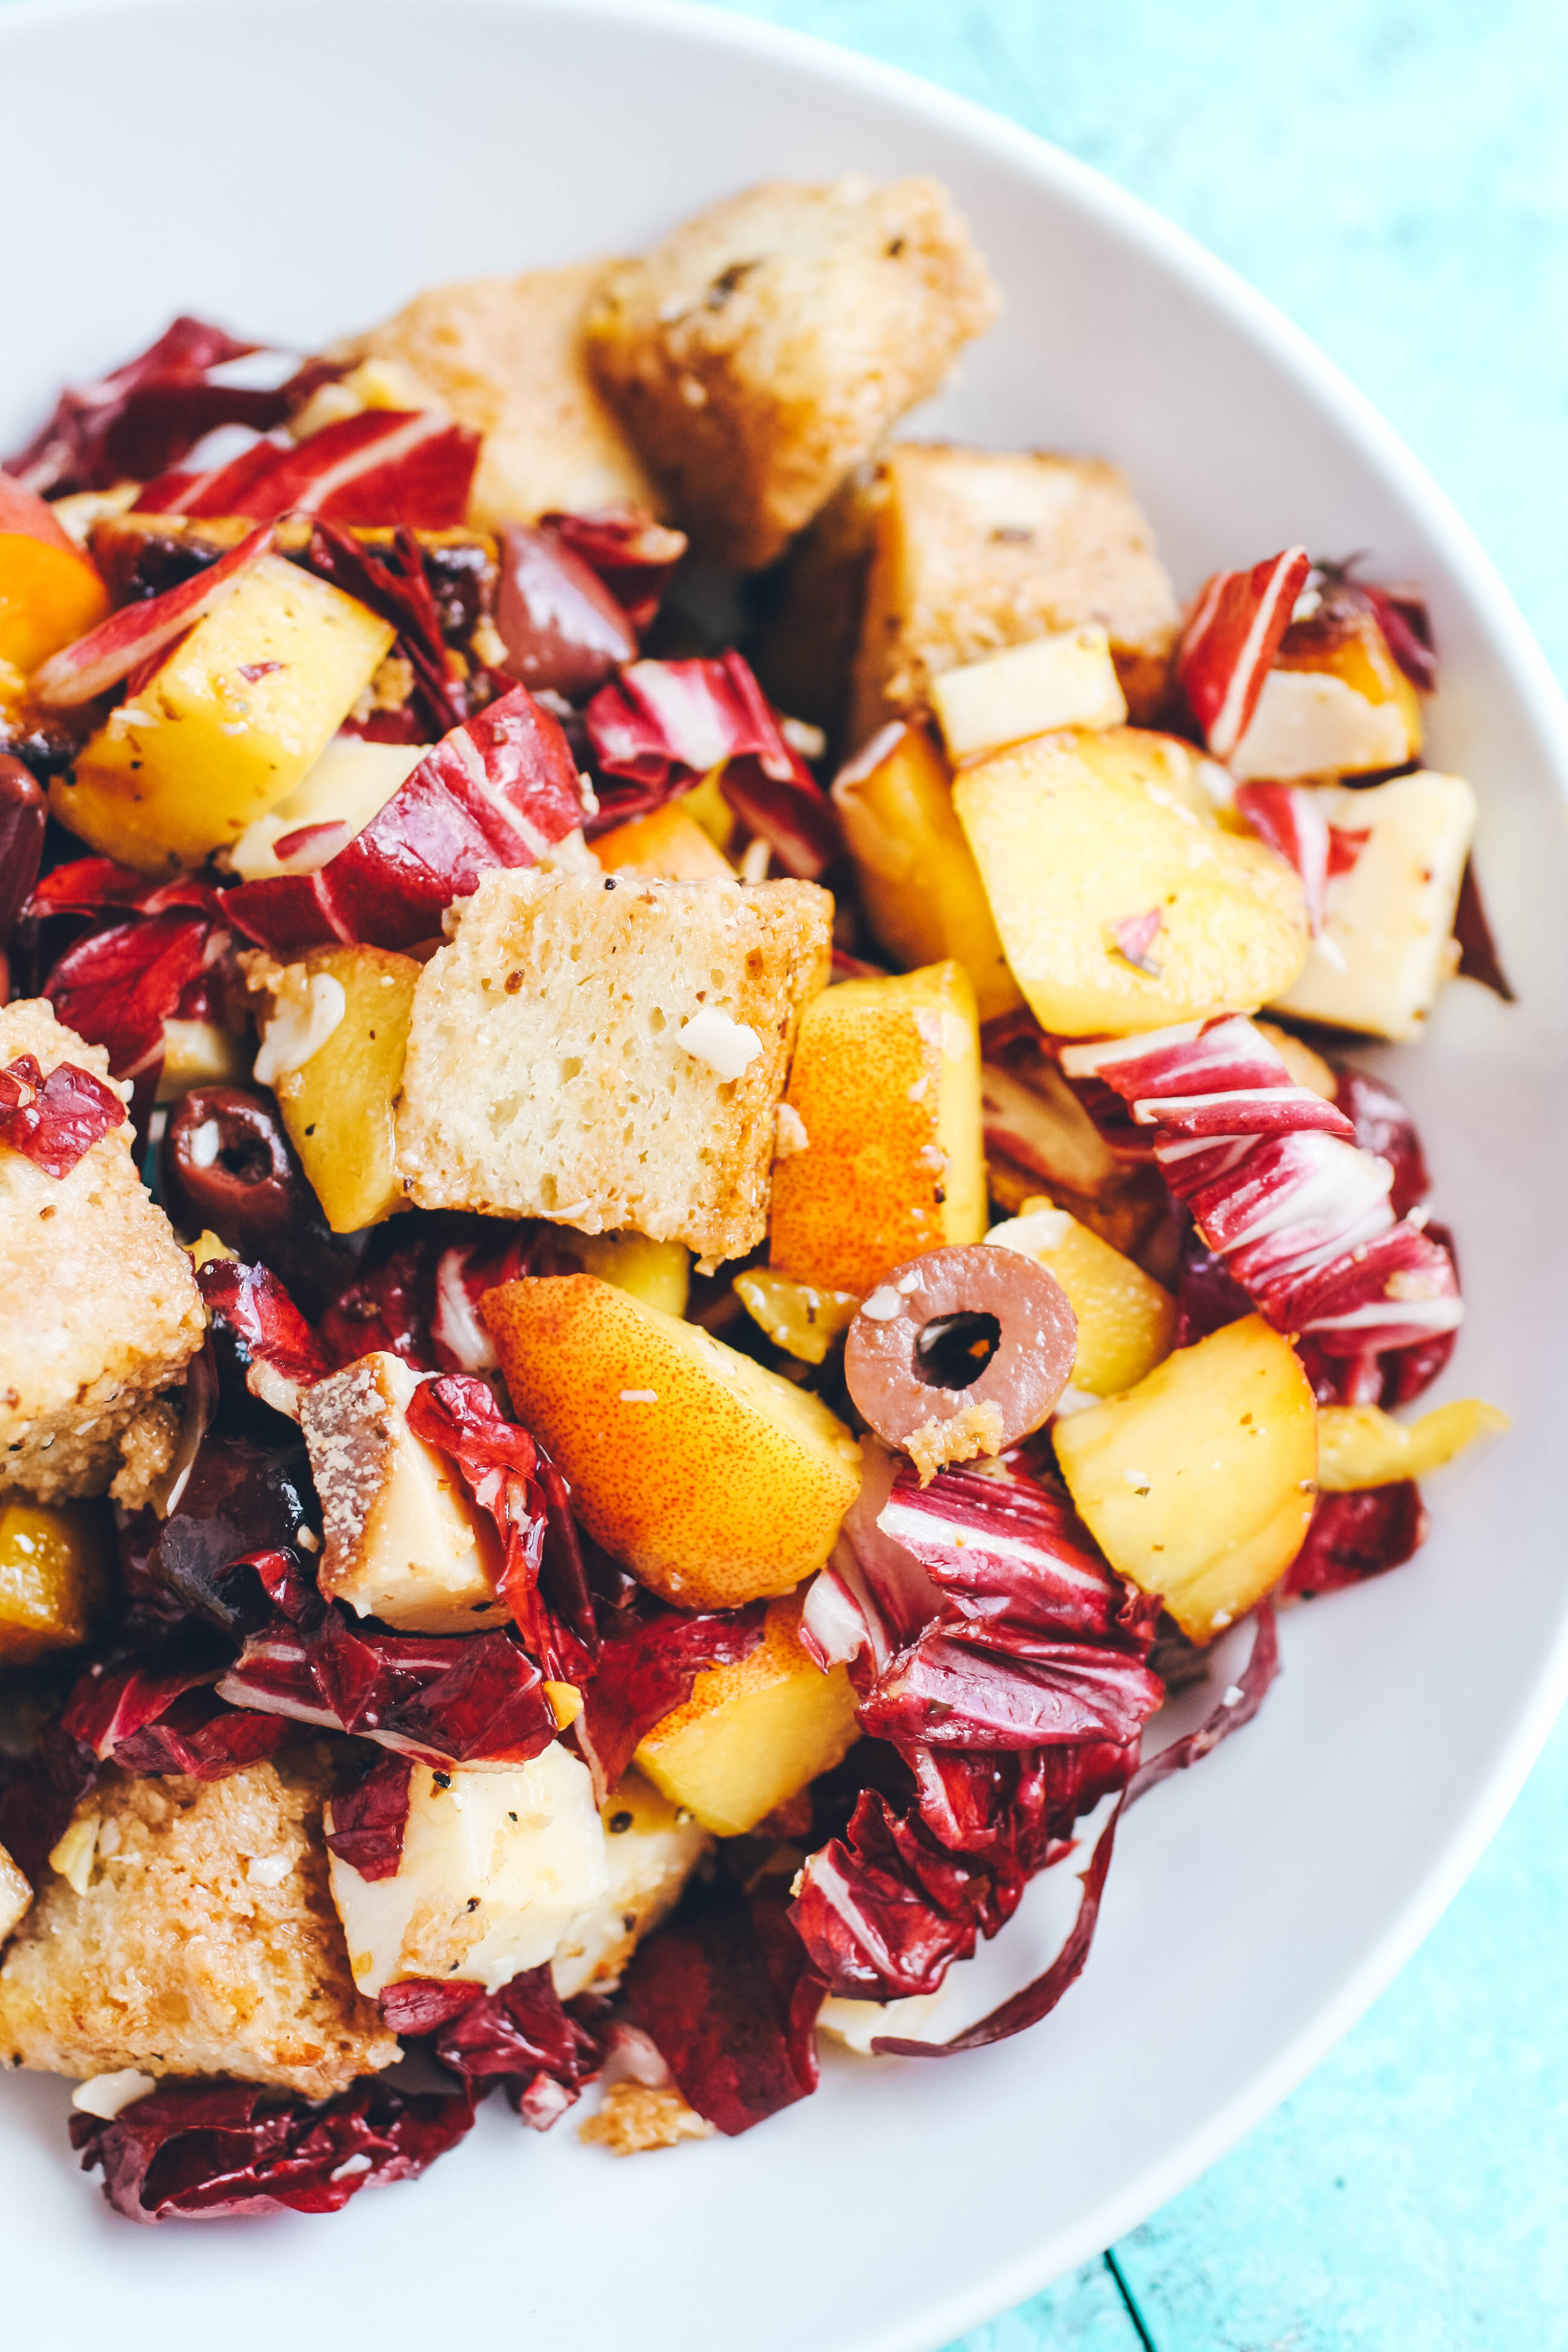 Roasted Beet, Peach & Radicchio Panzanella Salad is filled with great ingredients with big flavor! Roasted Beet, Peach & Radicchio Panzanella Salad is hearty and fun for a summer salad for dinner.